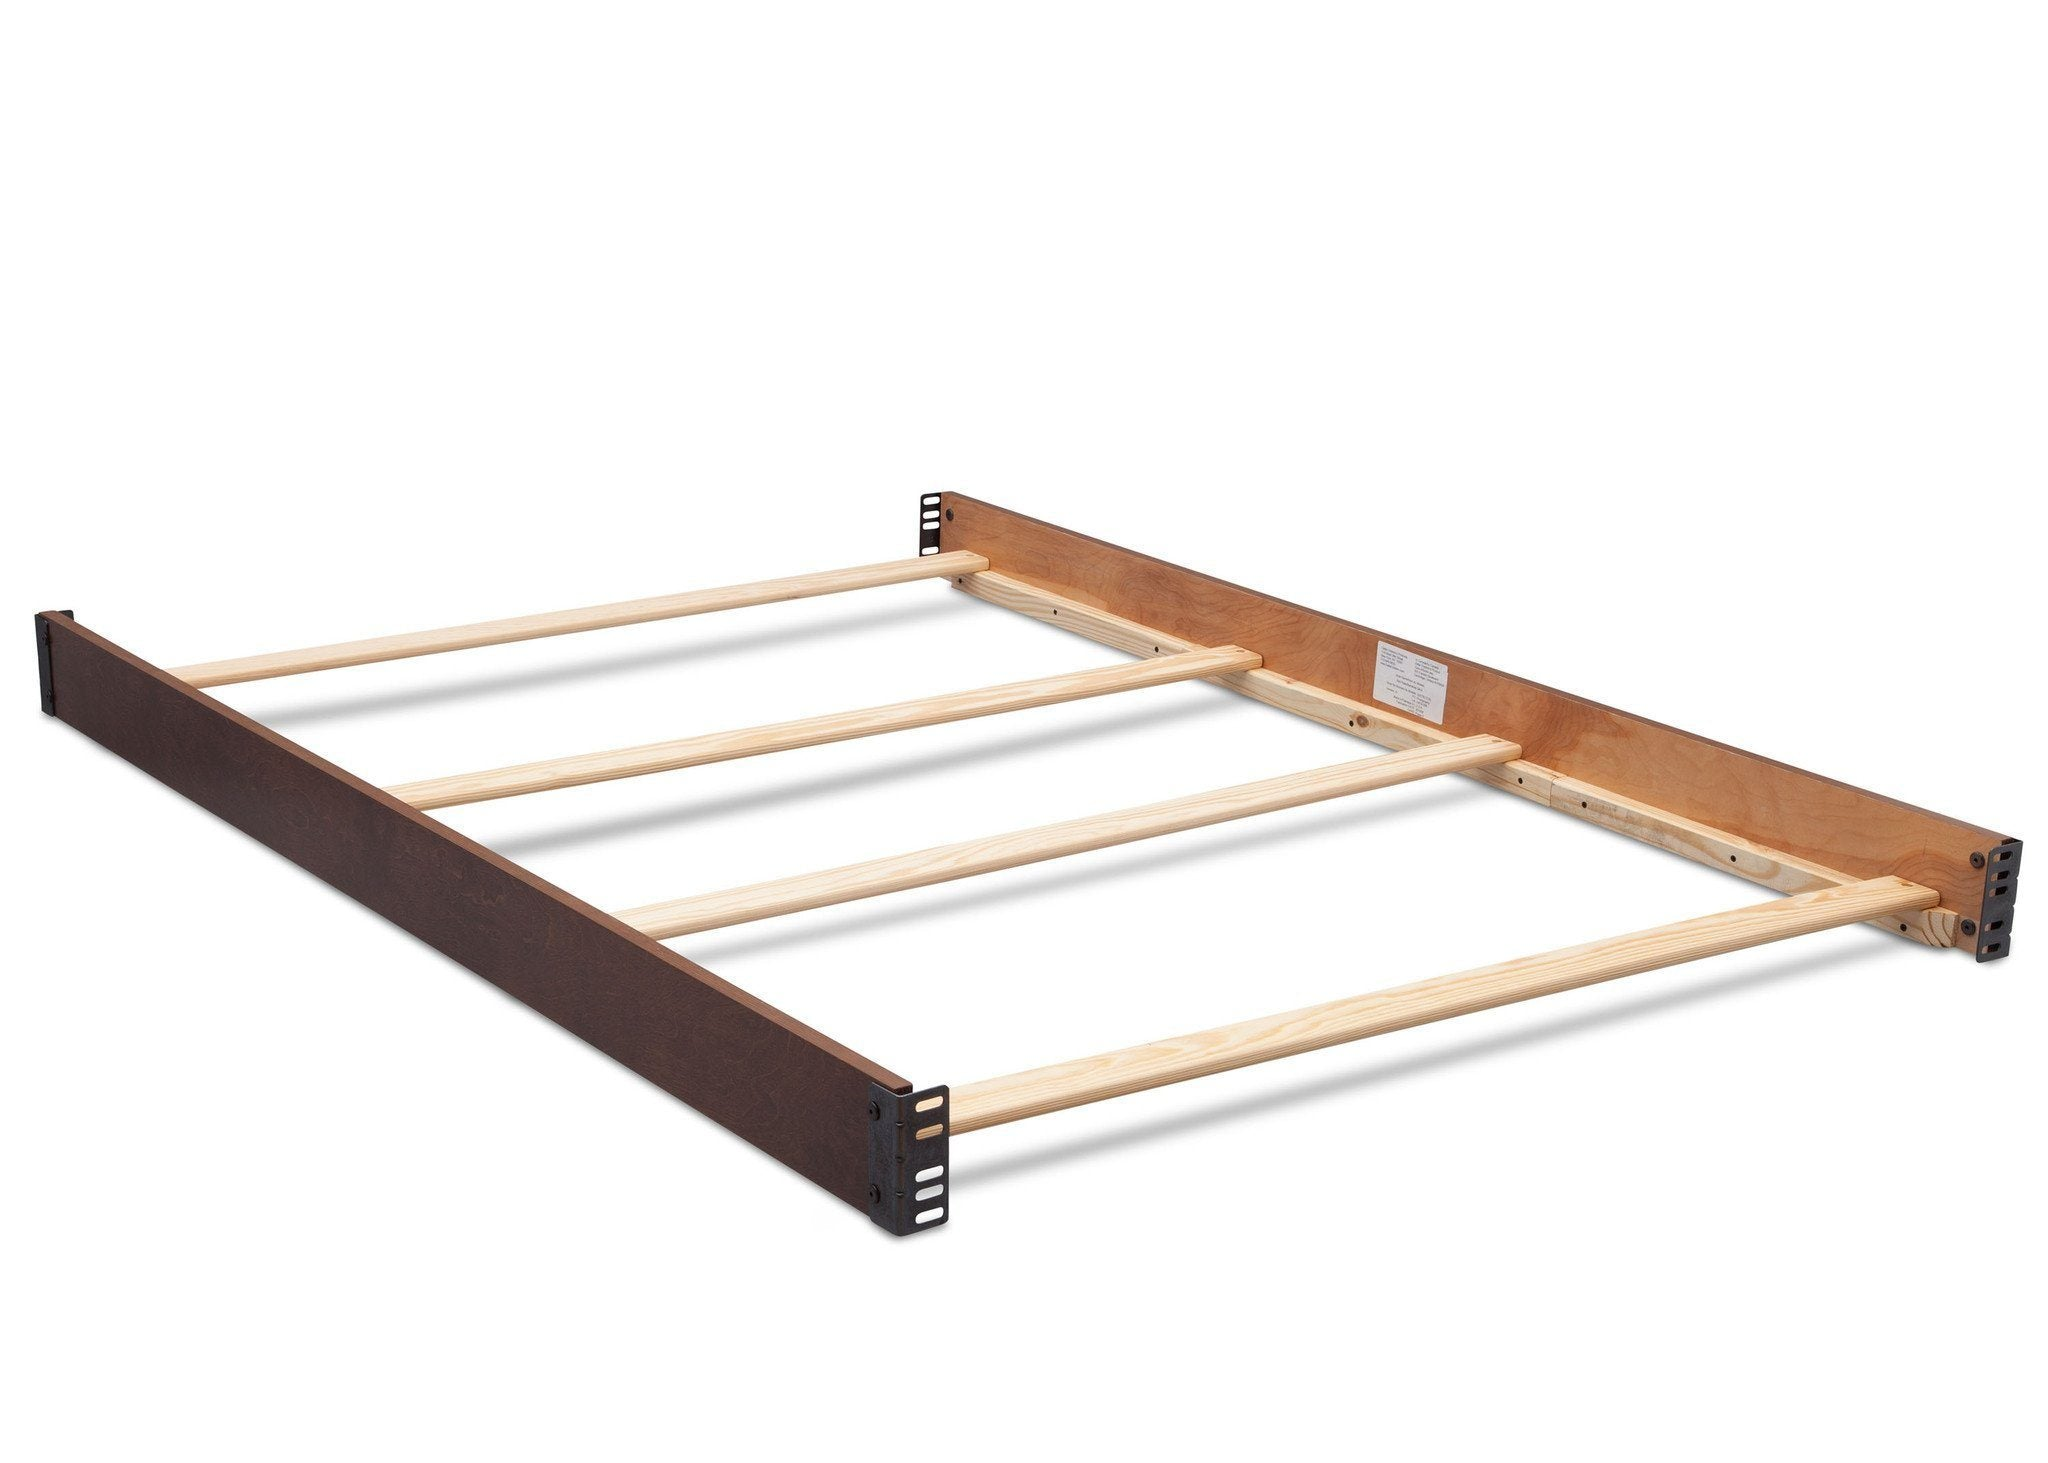 Simmons Kids Antique Chestnut (2100) Full Size Wood Bed Rails (180050) f1f for Bristol 4-in-1 Convertible Crib